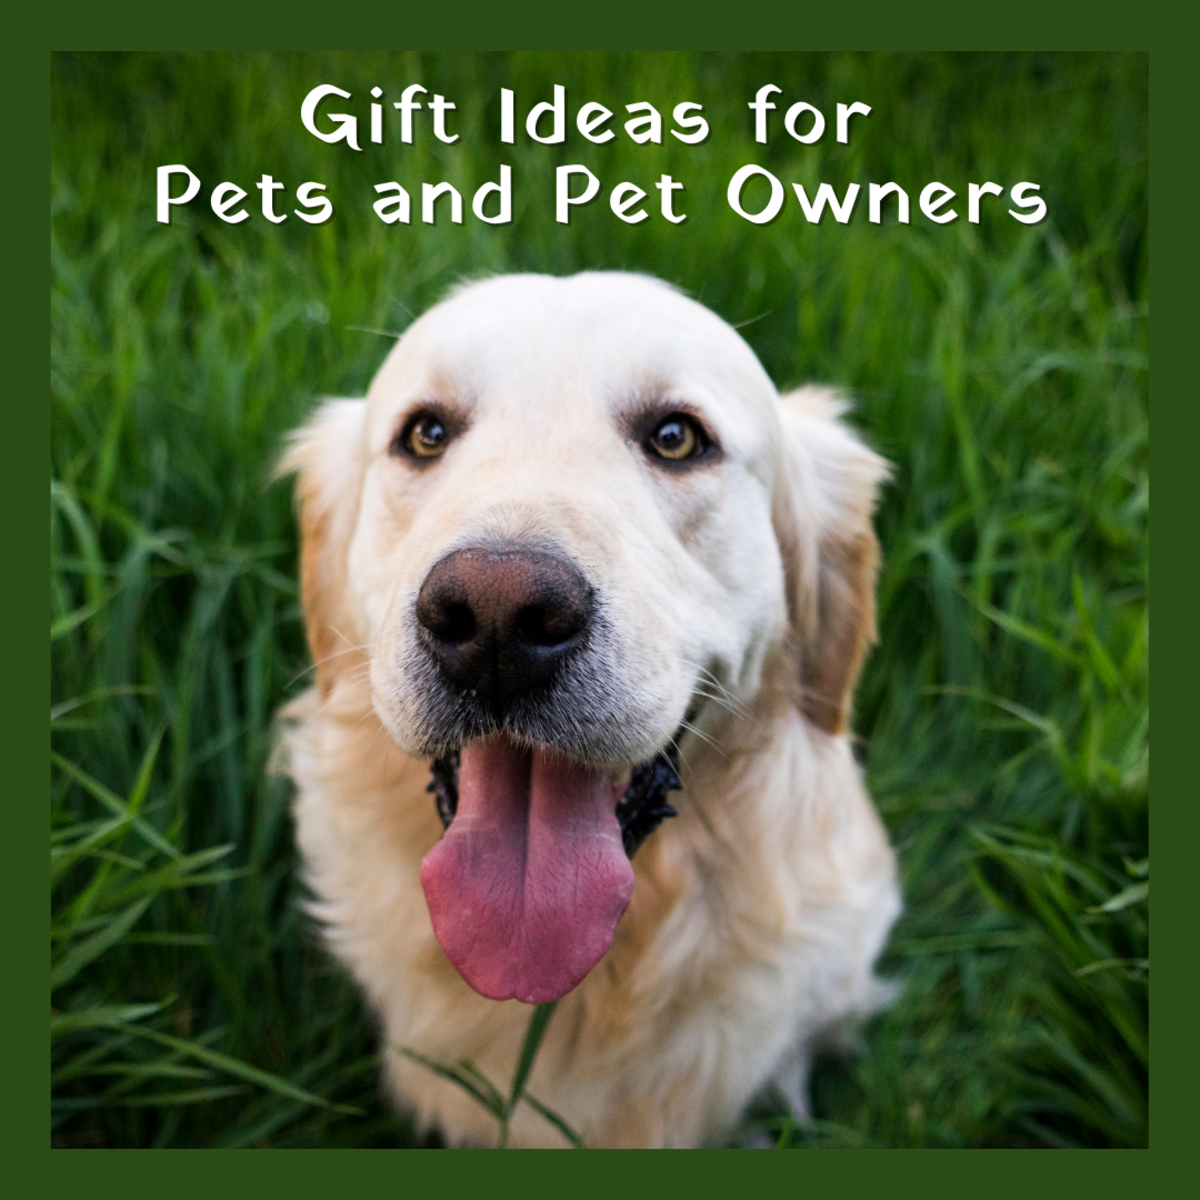 Awesome gift ideas for pets and pet lovers